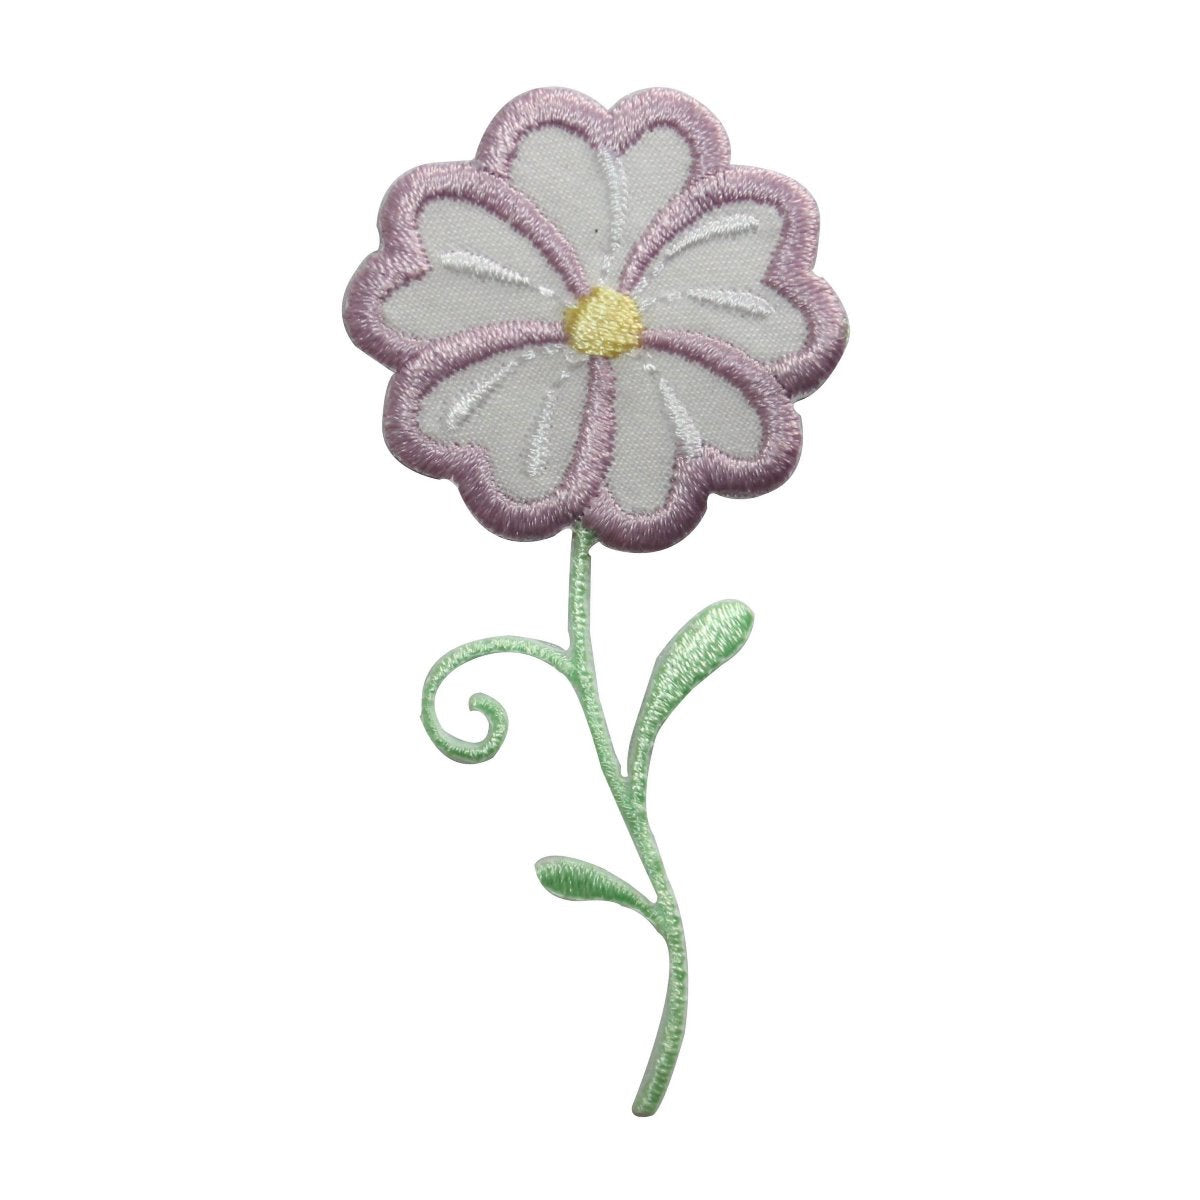 ID 8656 Purple Daisy Flower Patch Blossom Garden Embroidered Iron On Applique